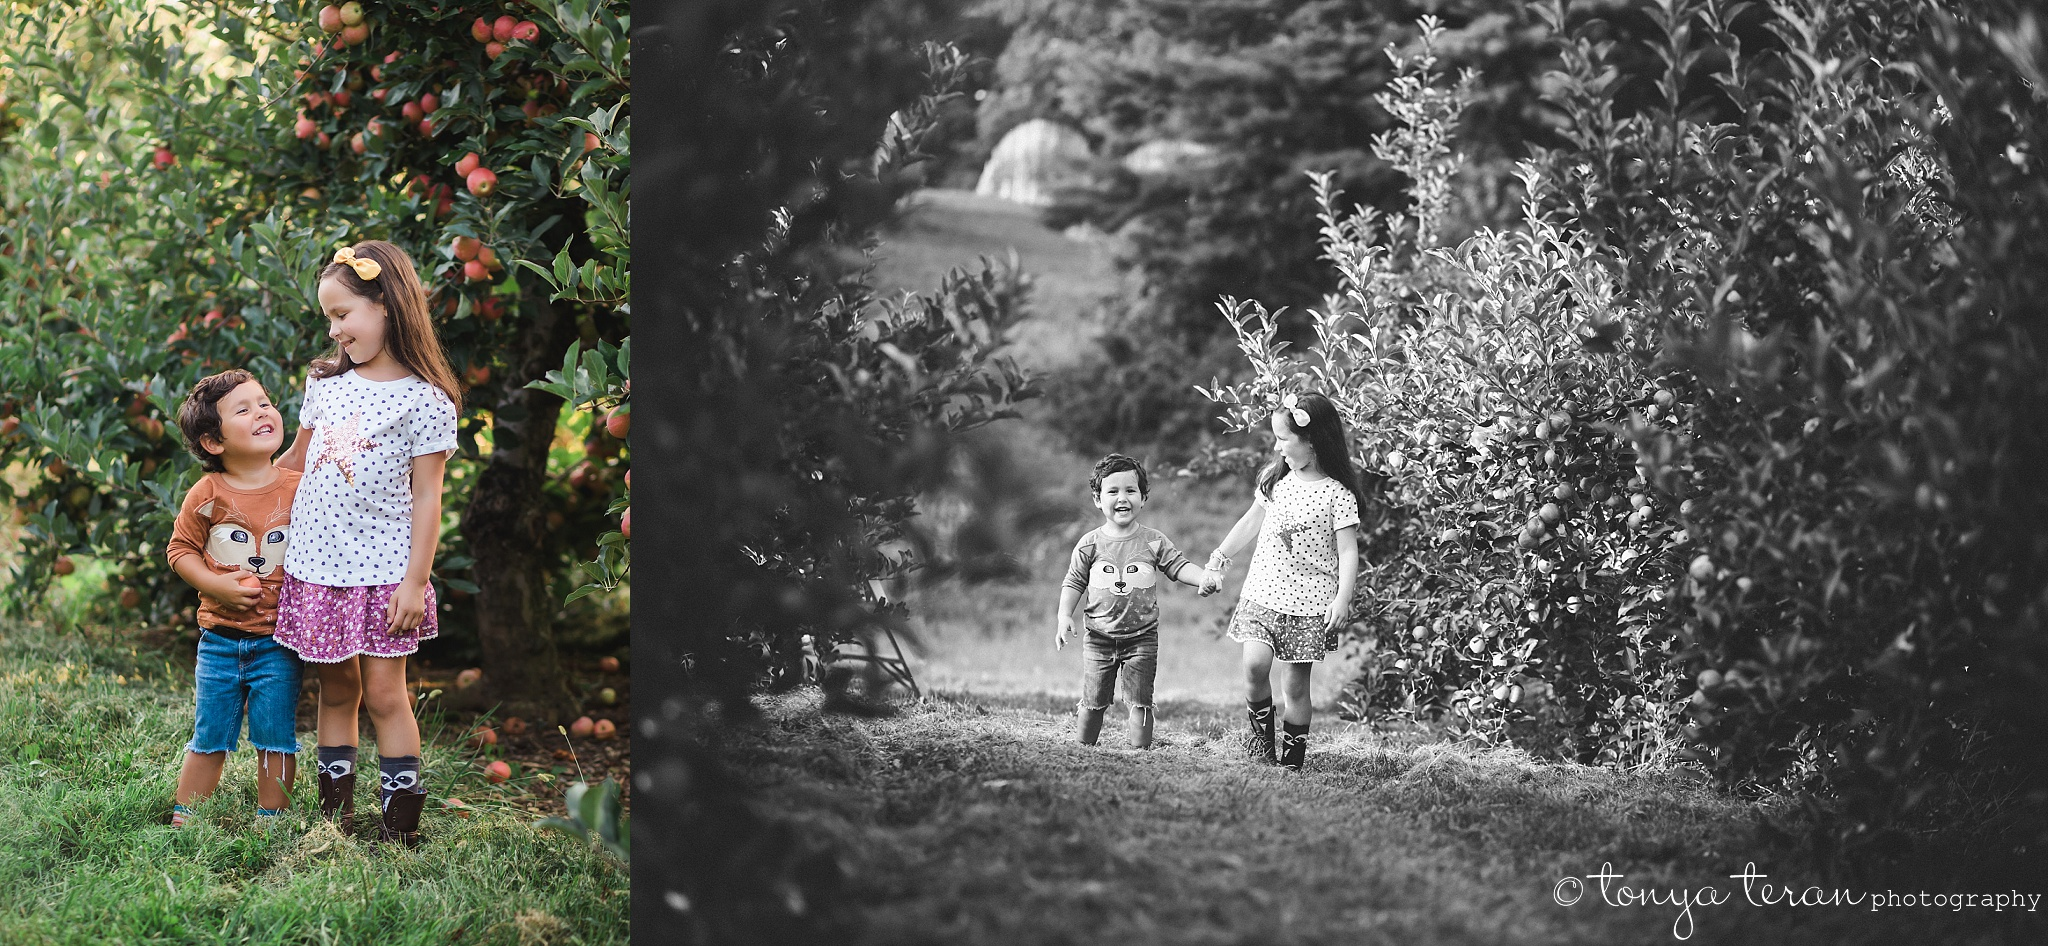 2016 Fall Mini Sessions | Tonya Teran Photography, Germantown, MD Newborn, Baby, and Family Photographer